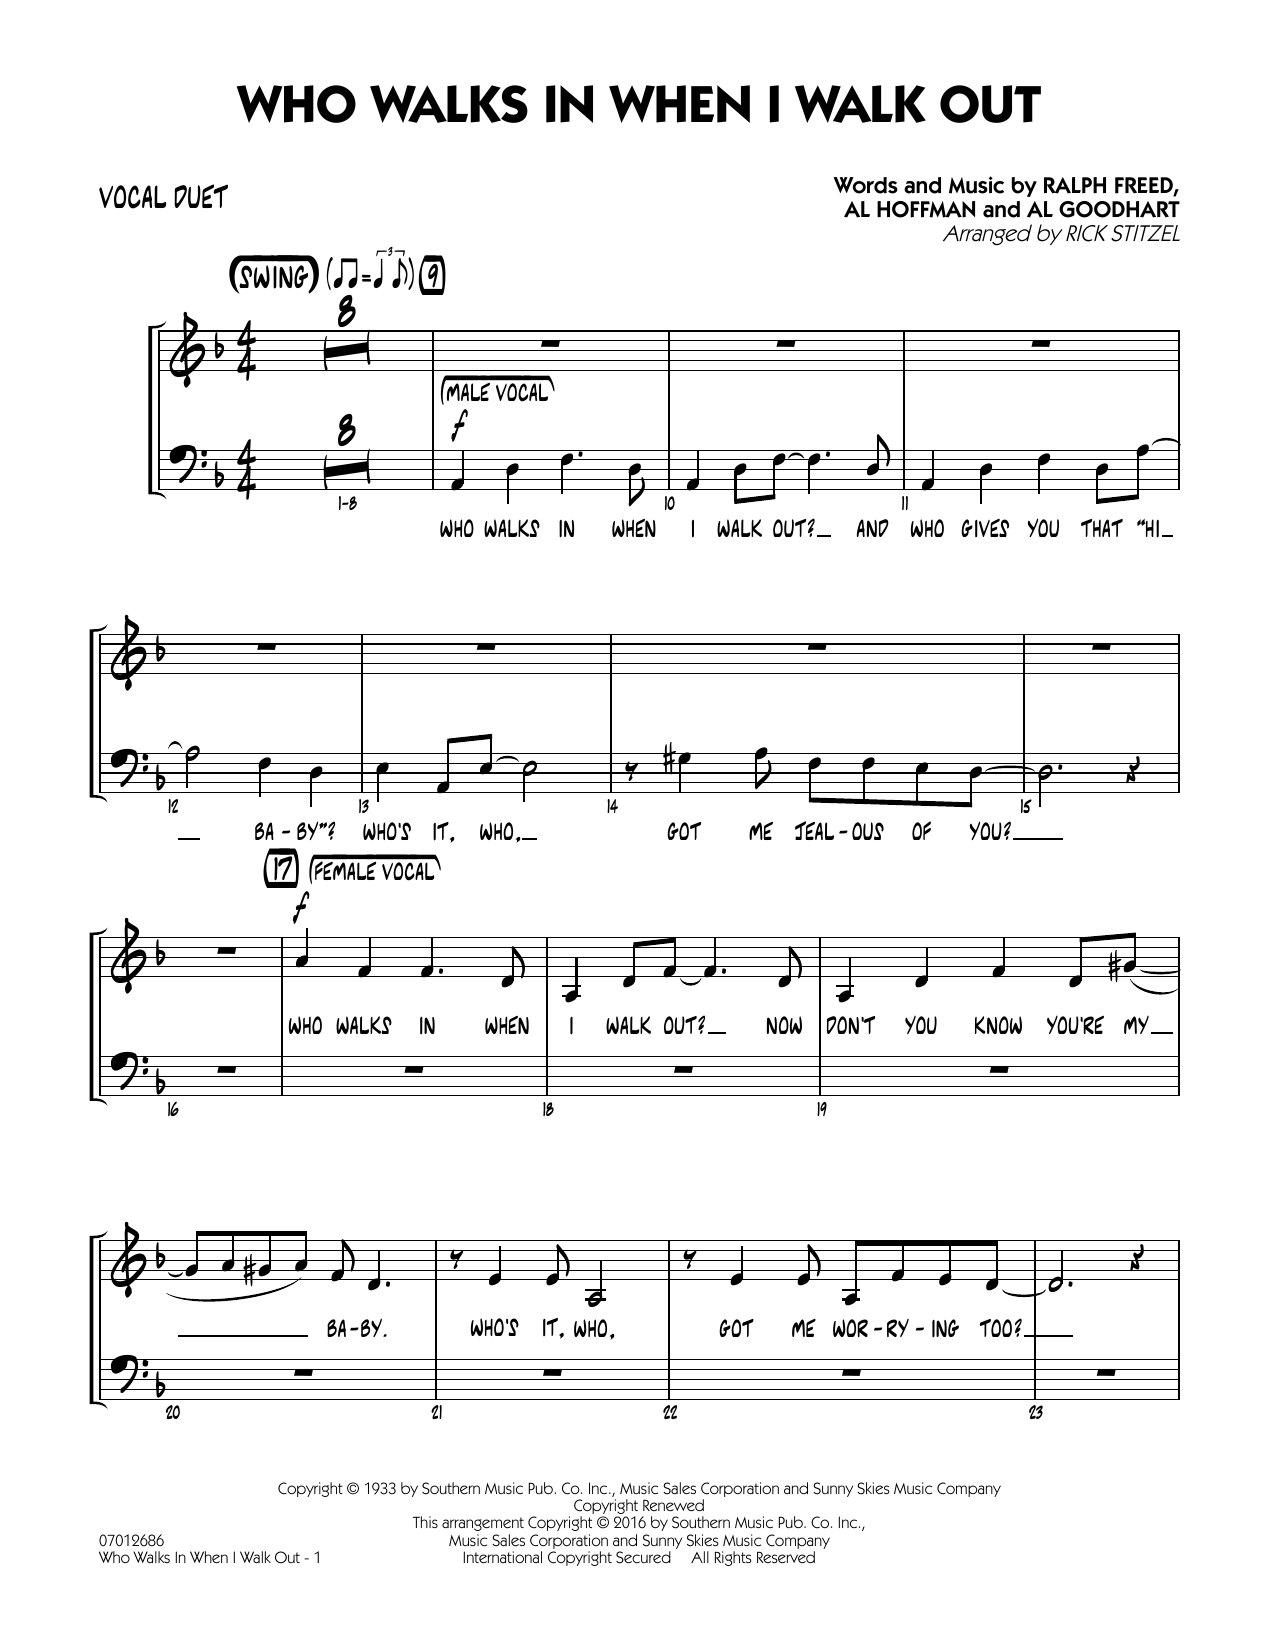 Who Walks In When I Walk Out? (Key: D minor) - Vocal Duet (Jazz Ensemble)